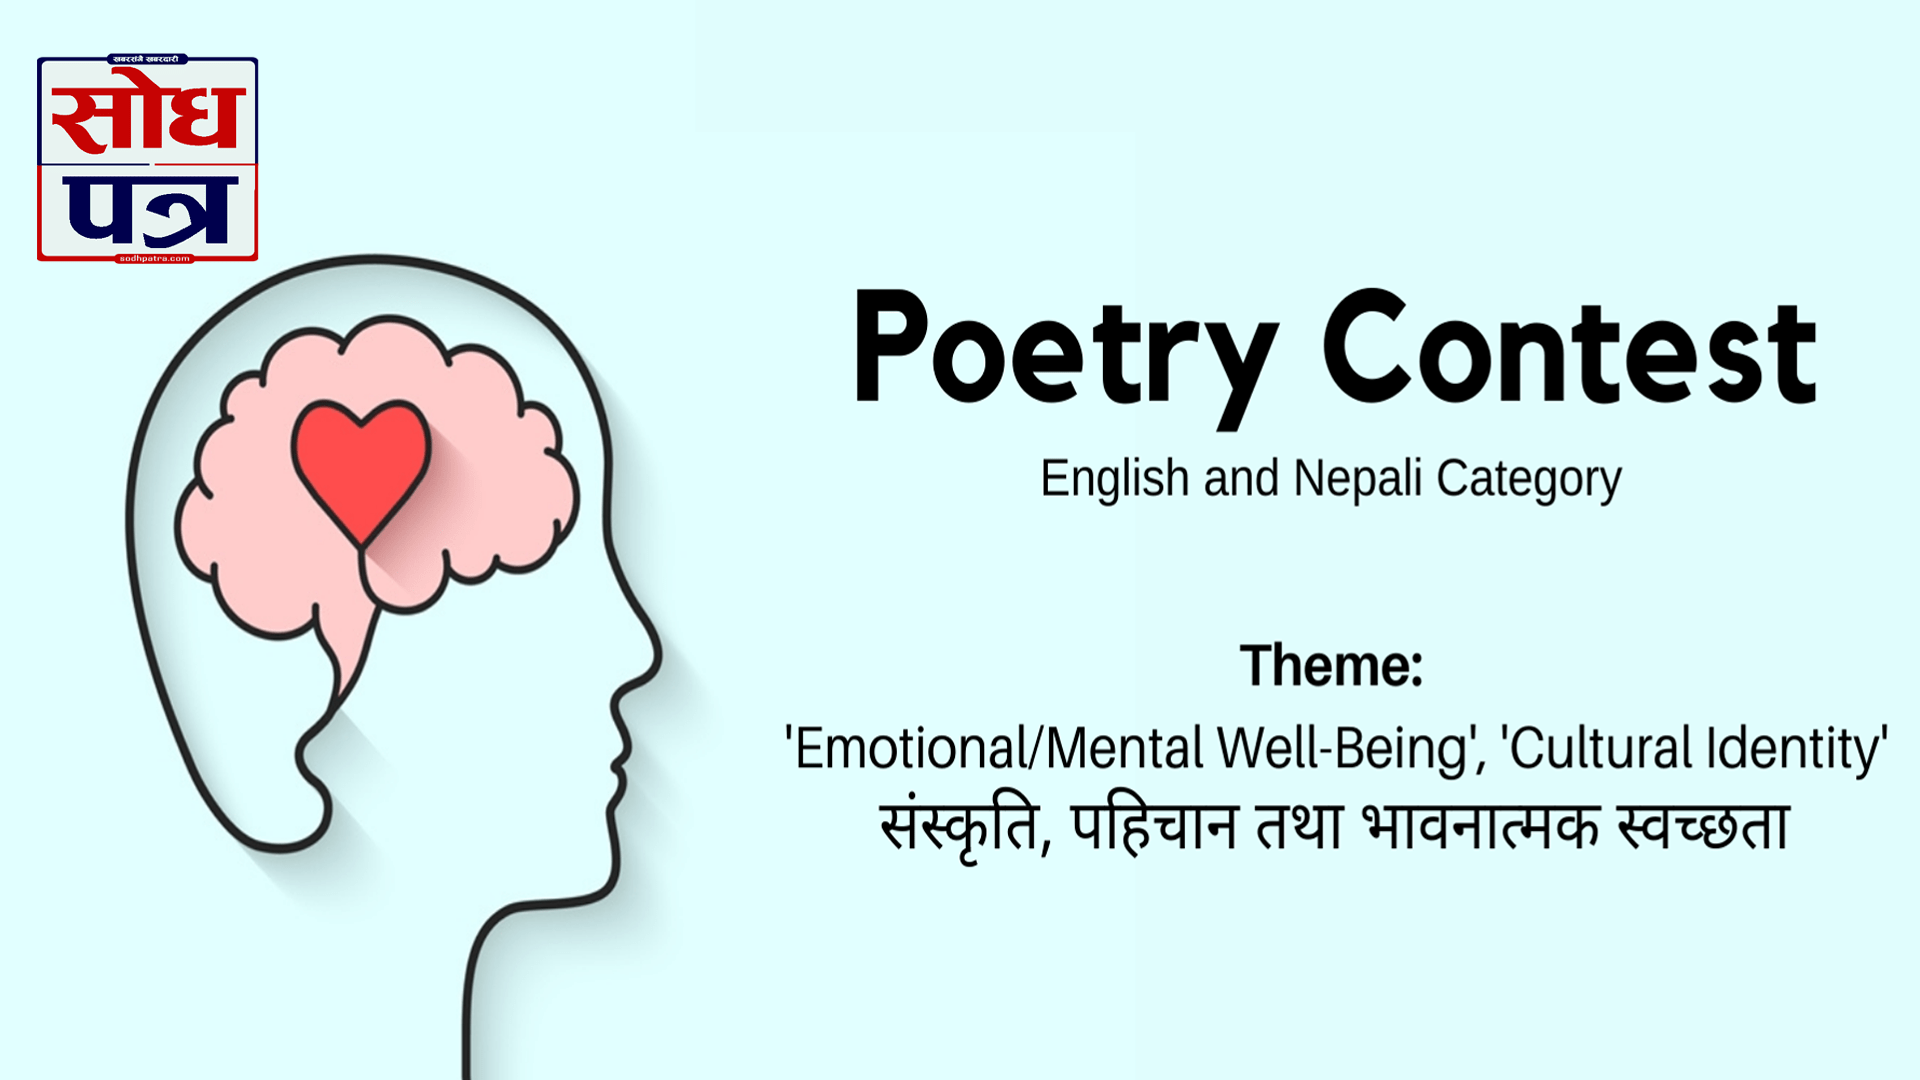 Poetry Contest on Emotional/Mental Well-Being and Cultural Identity